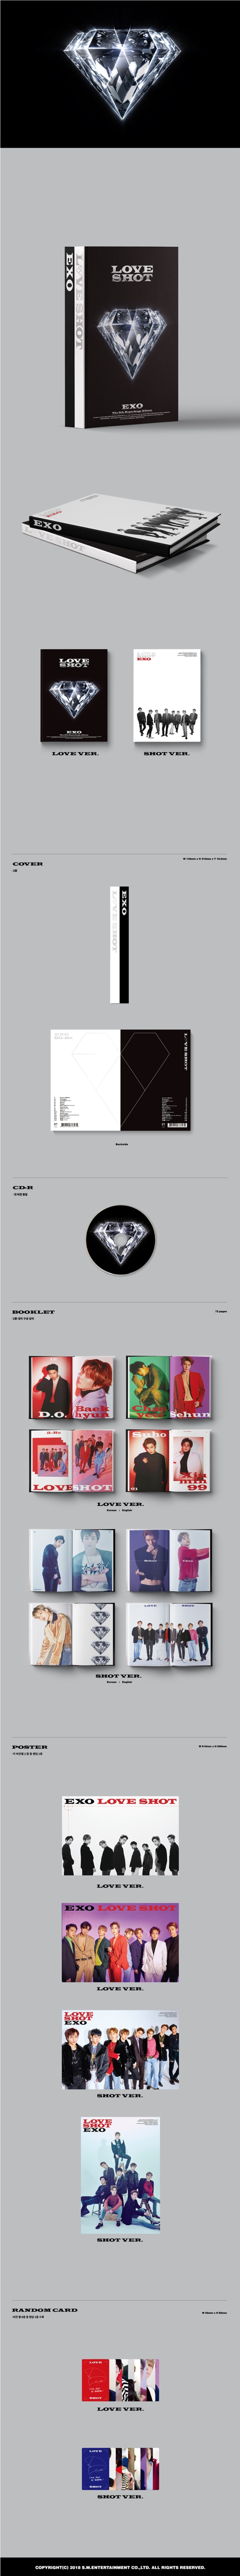 EXO - Love Shot (Repackage)